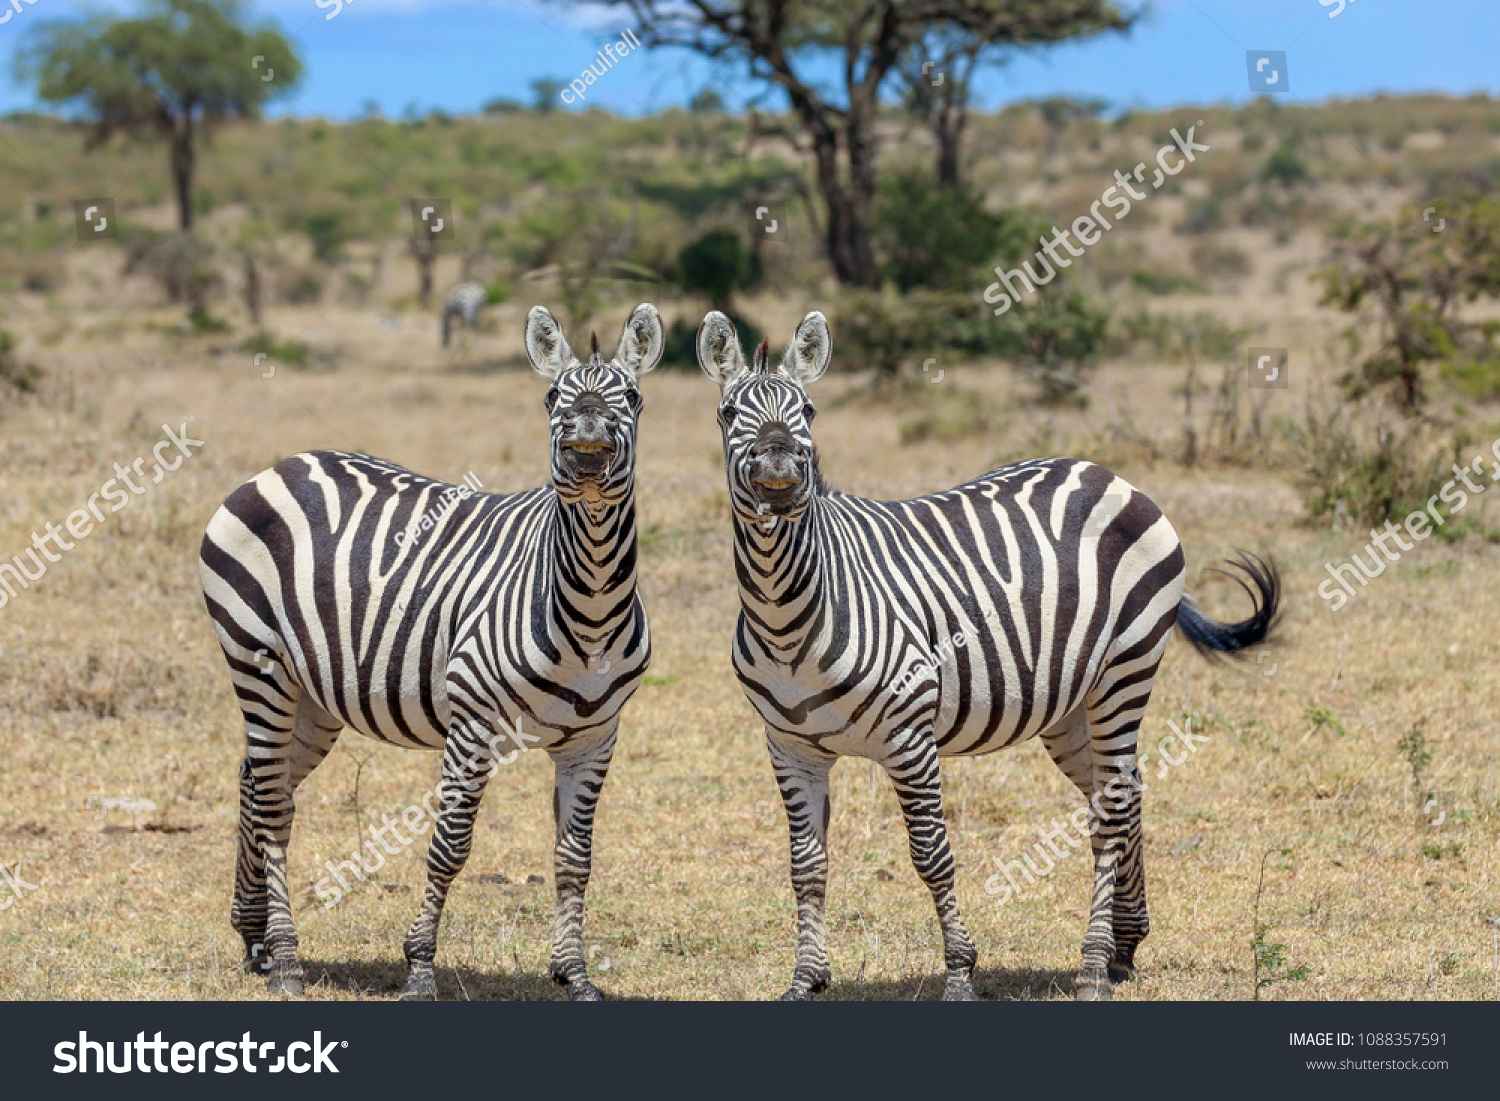 stock-photo-zebras-posing-and-smiling-fo